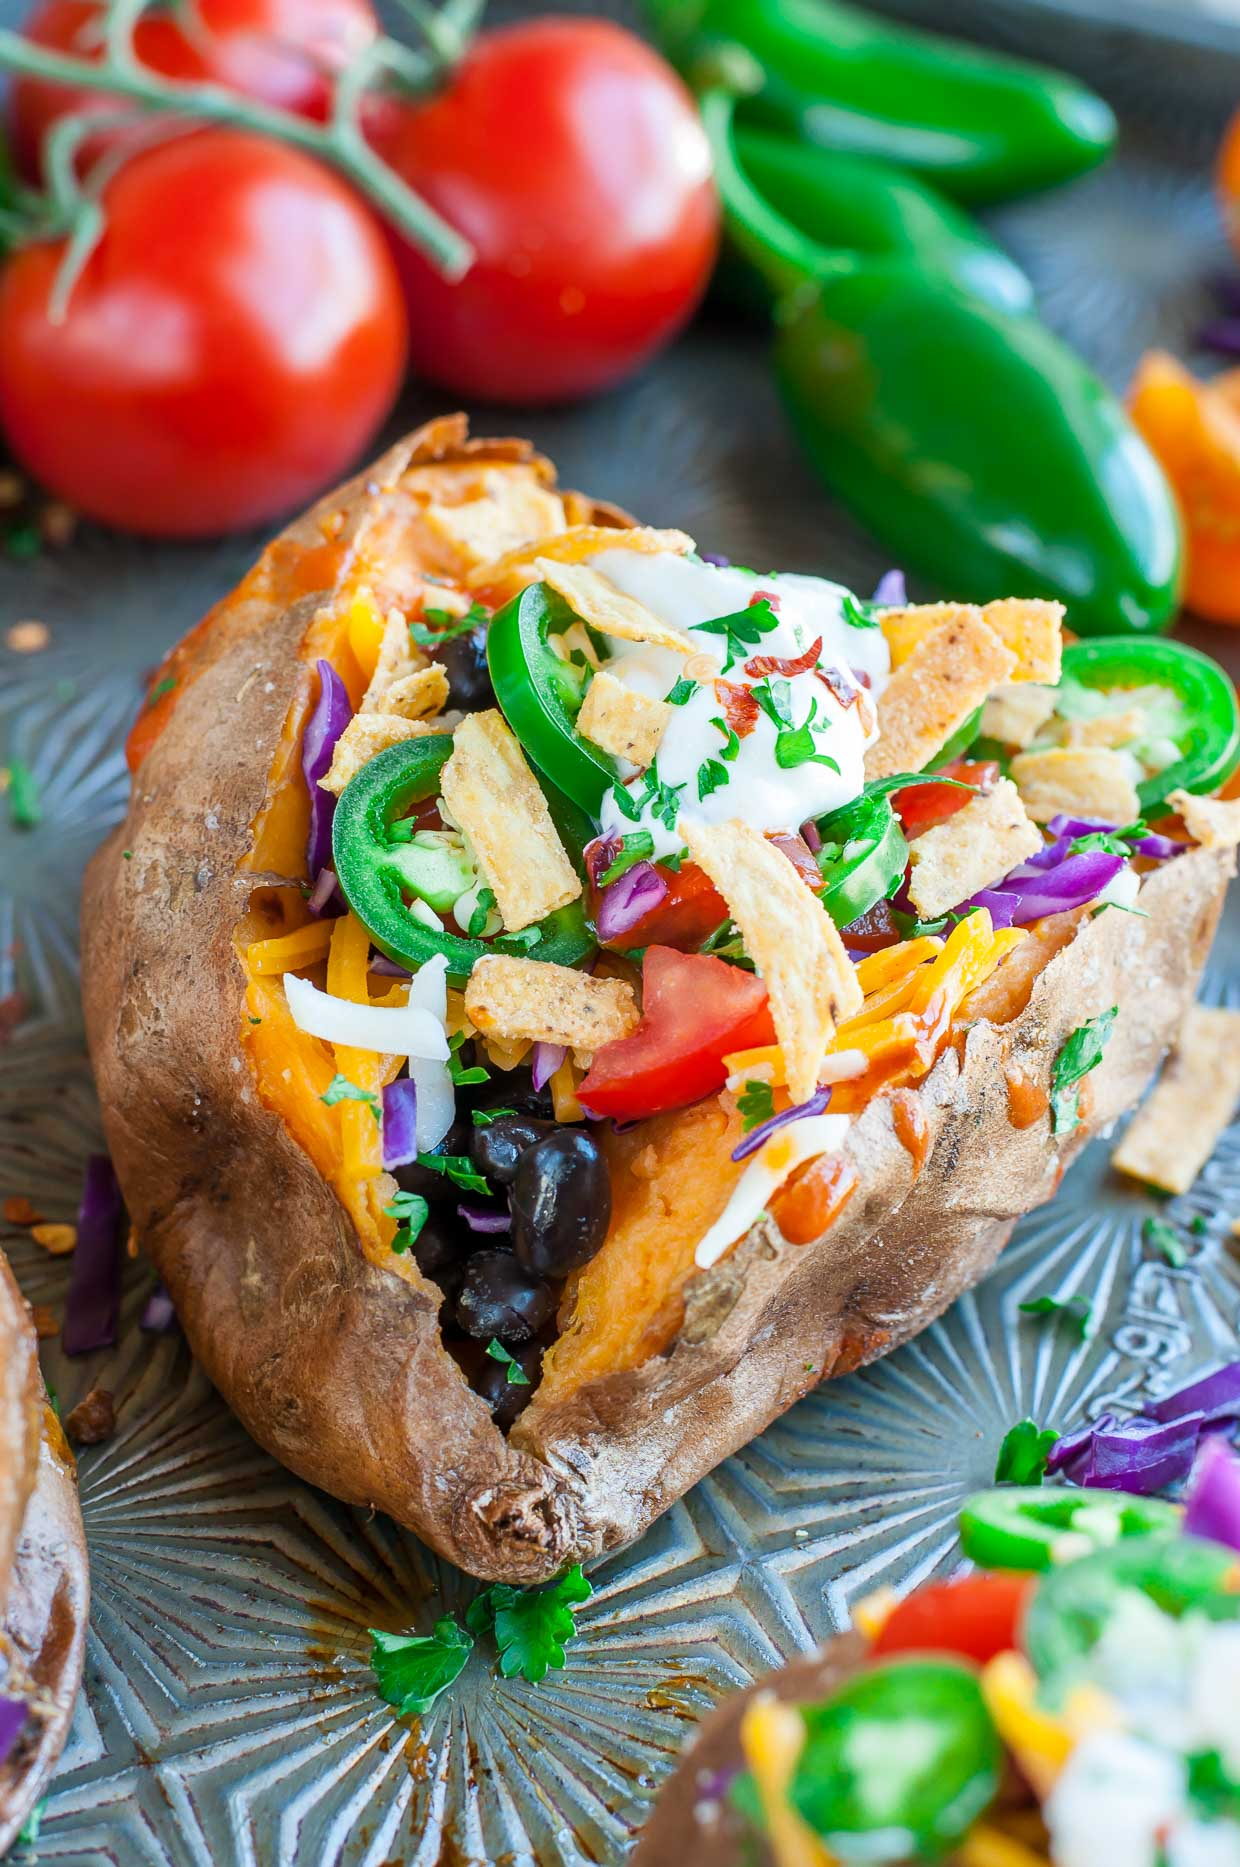 Aiming to eat more veggies? Load up on the good stuff by topping baked sweet potatoes with all your favorite taco ingredients. Bonus points for sneaking veggies into the taco filling too! These bad boys are naturally gluten free and easily made vegan, vegetarian, or paleo -- enjoy! :: Taco Stuffed Sweet Potatoes